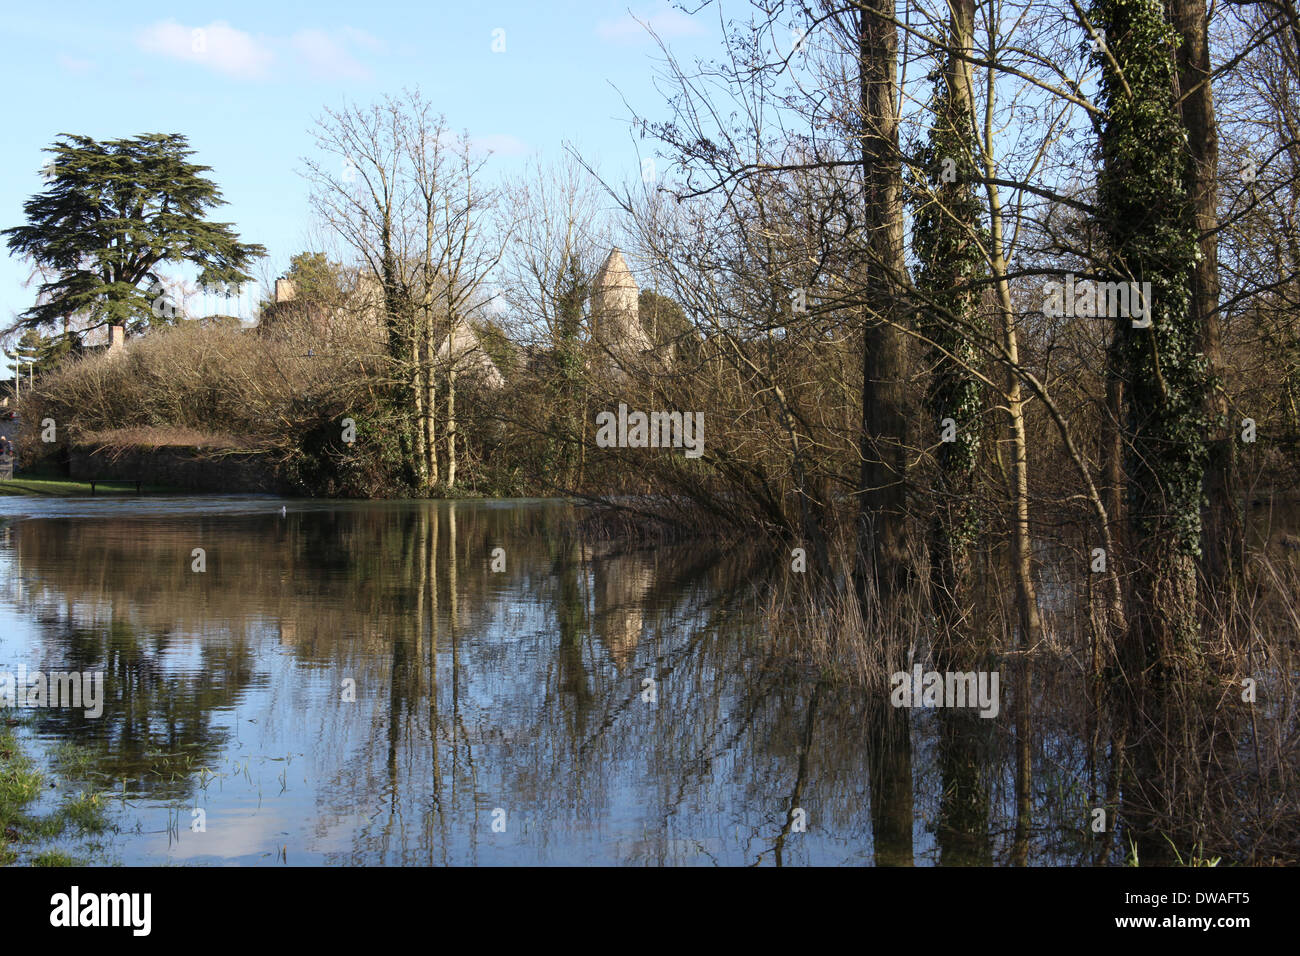 A flooded meadow in Witney Oxfordshire. - Stock Image